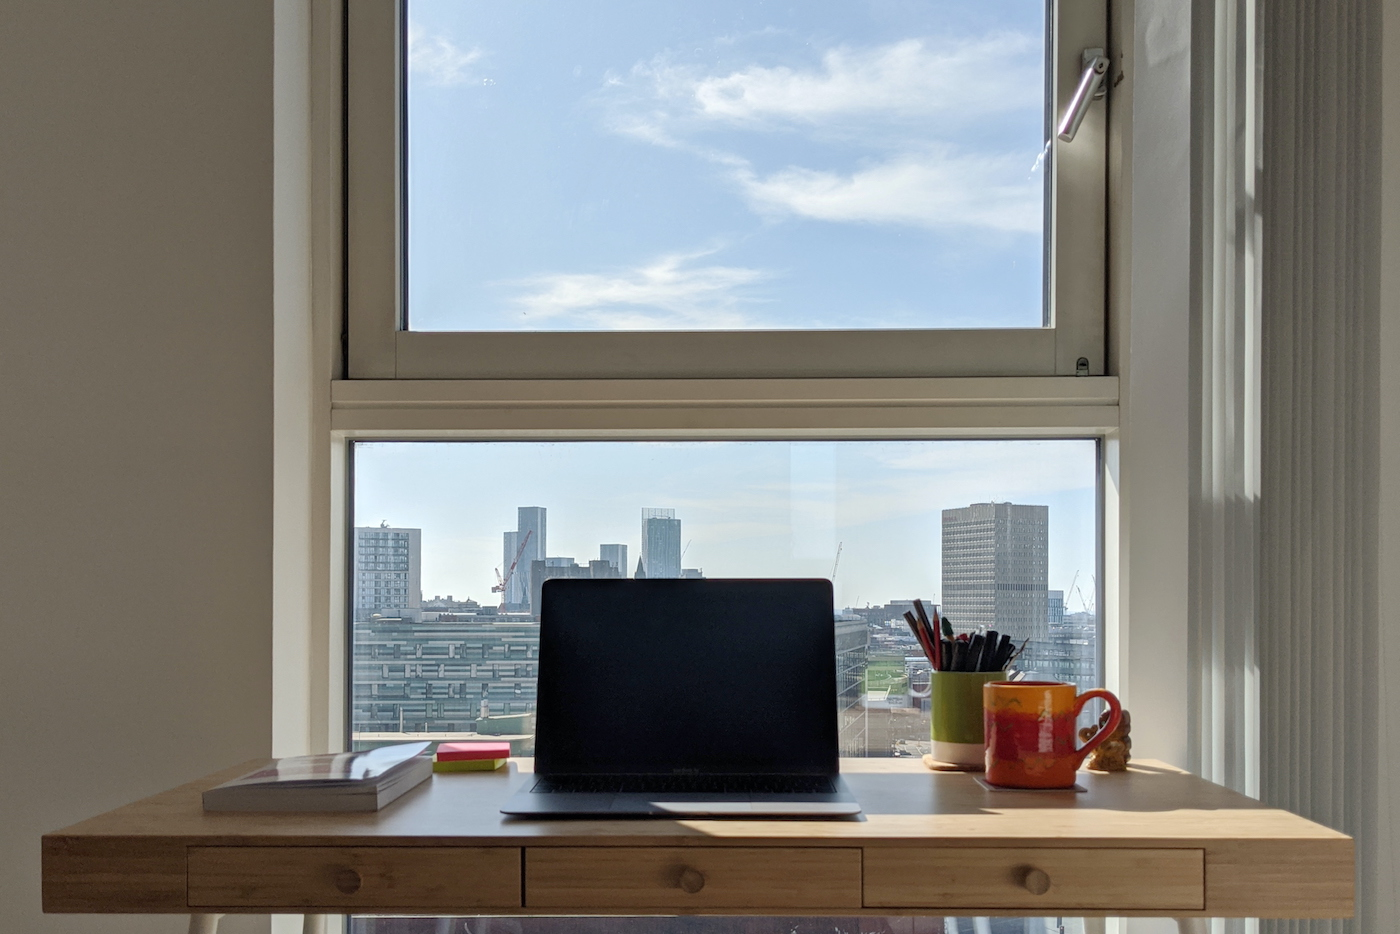 Laptop open on a desk in front of a window, out that window a blue sky and Manchester skyline